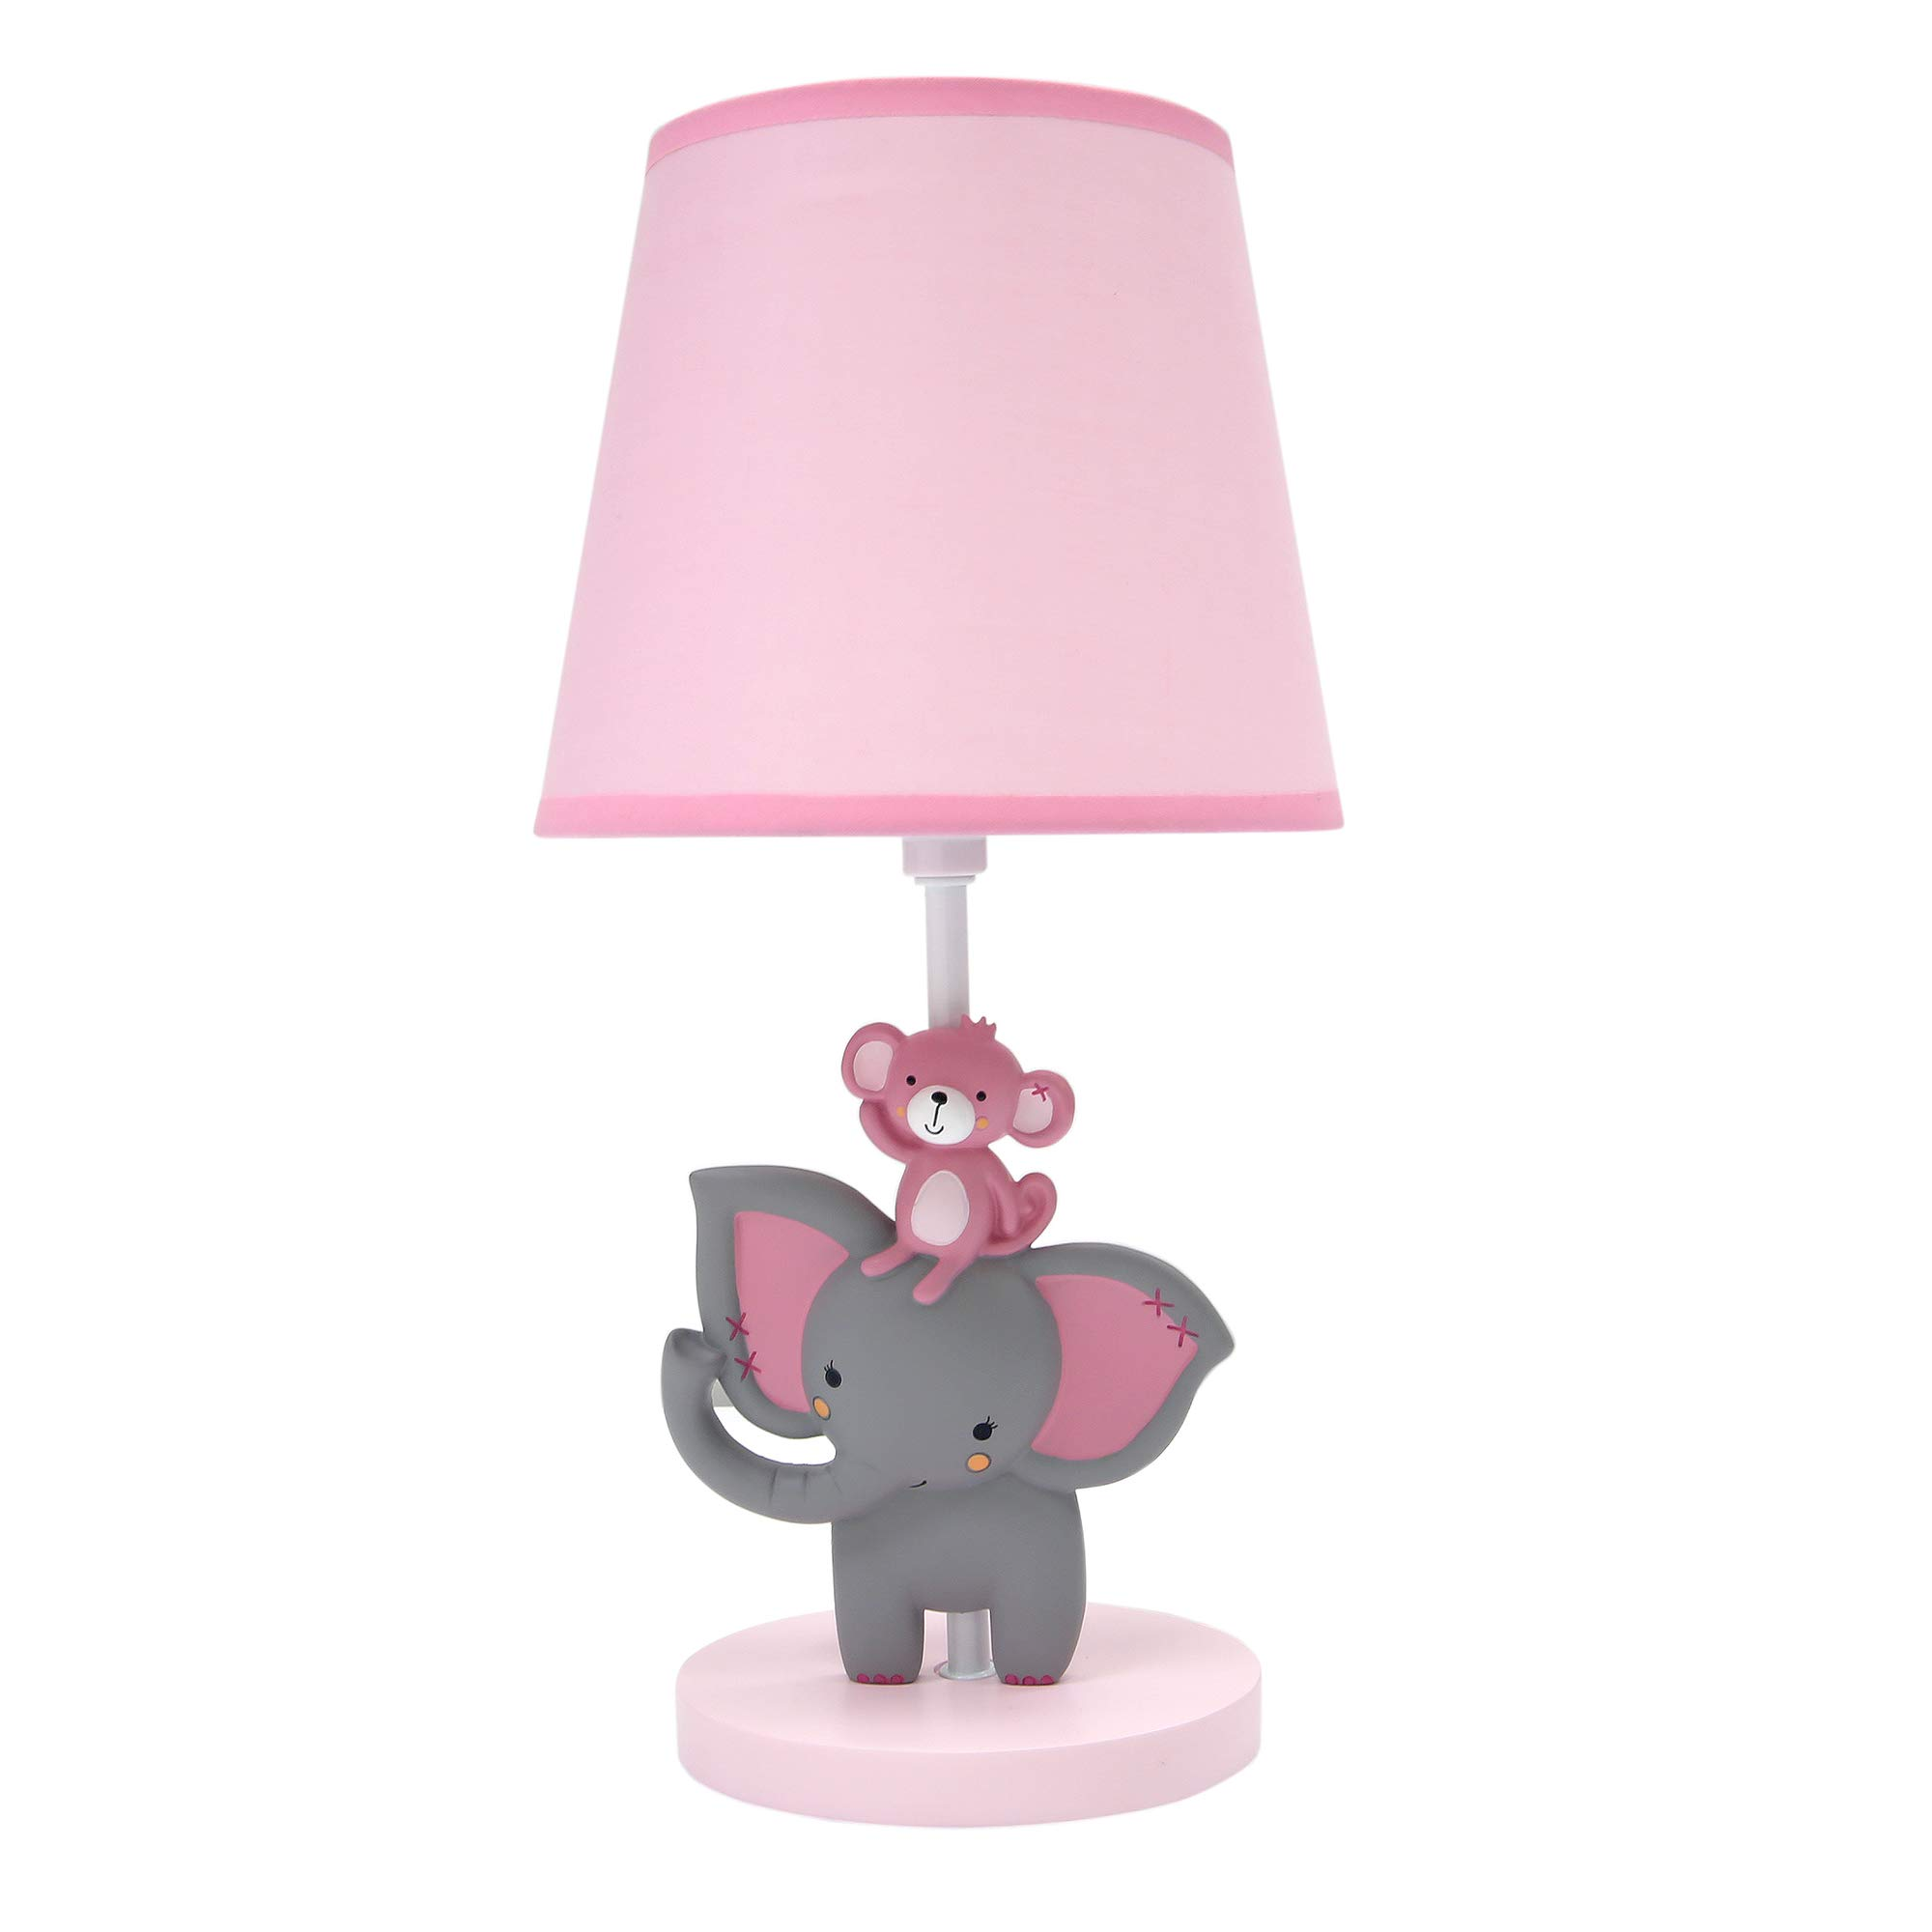 Bedtime Originals Twinkle Toes Lamp with Shade & Bulb, Pink by Bedtime Originals